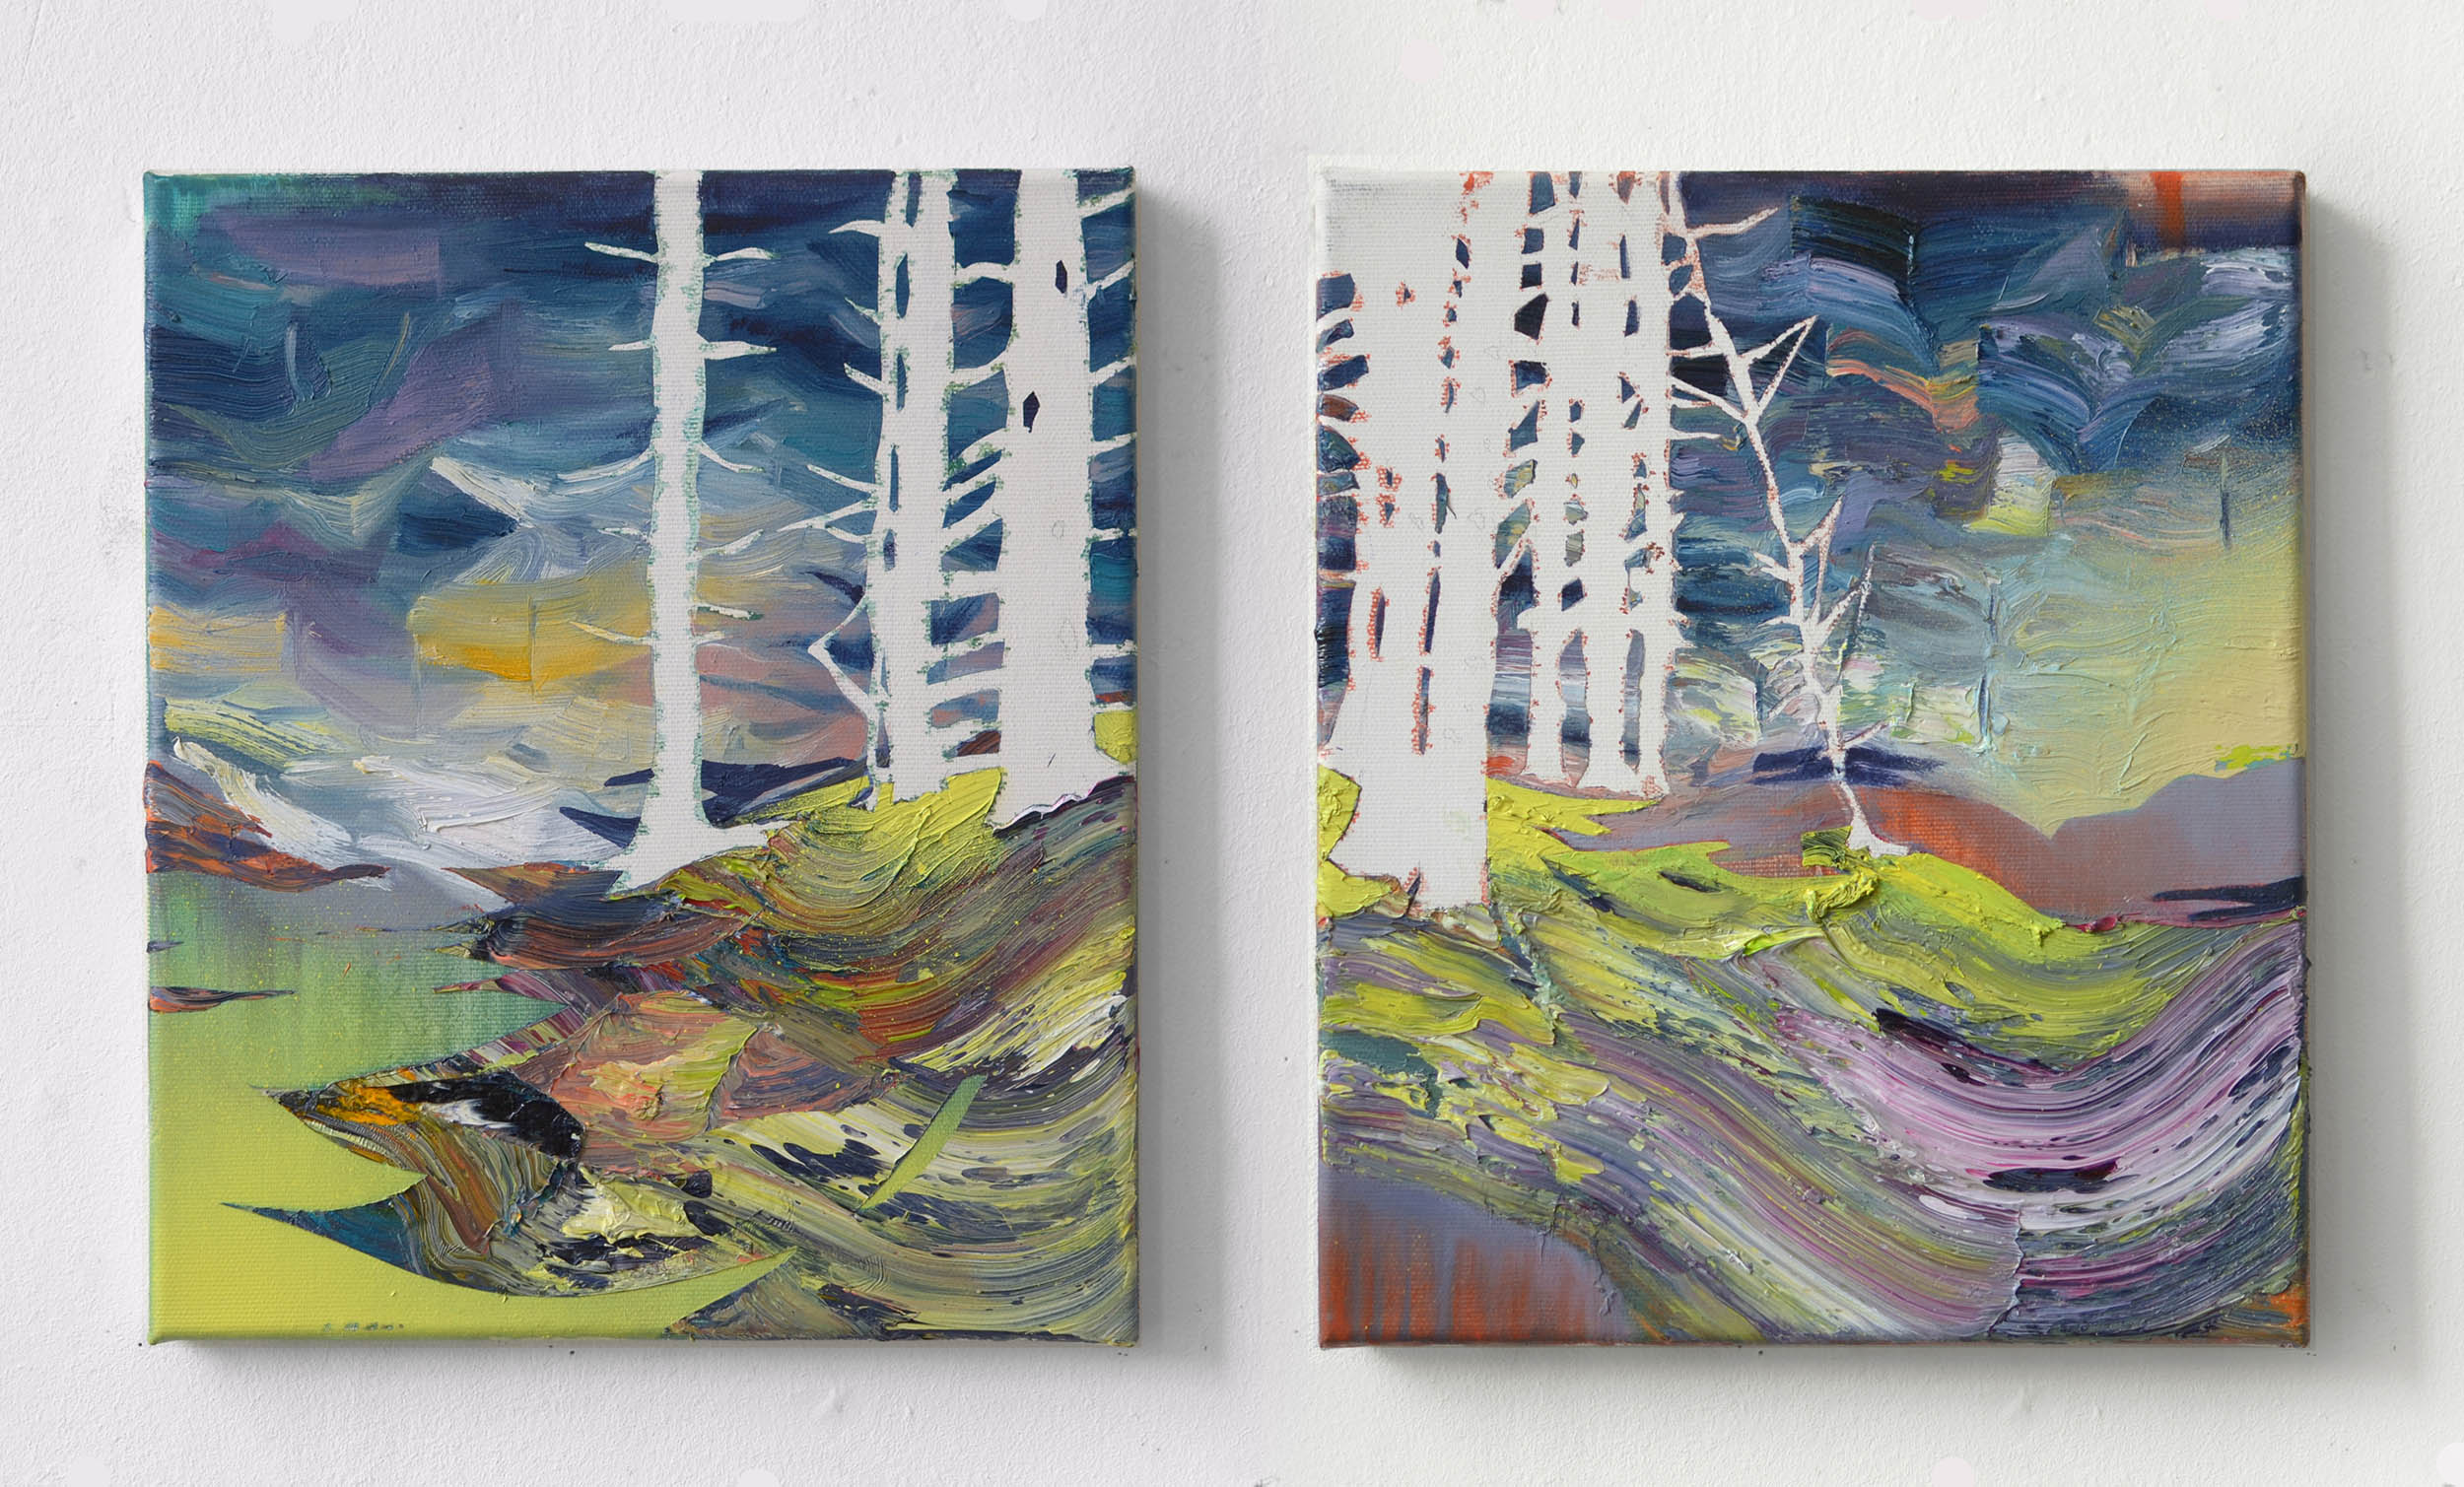 Nadelwald I & II  oil on canvas 30 x 25 cm, 2013